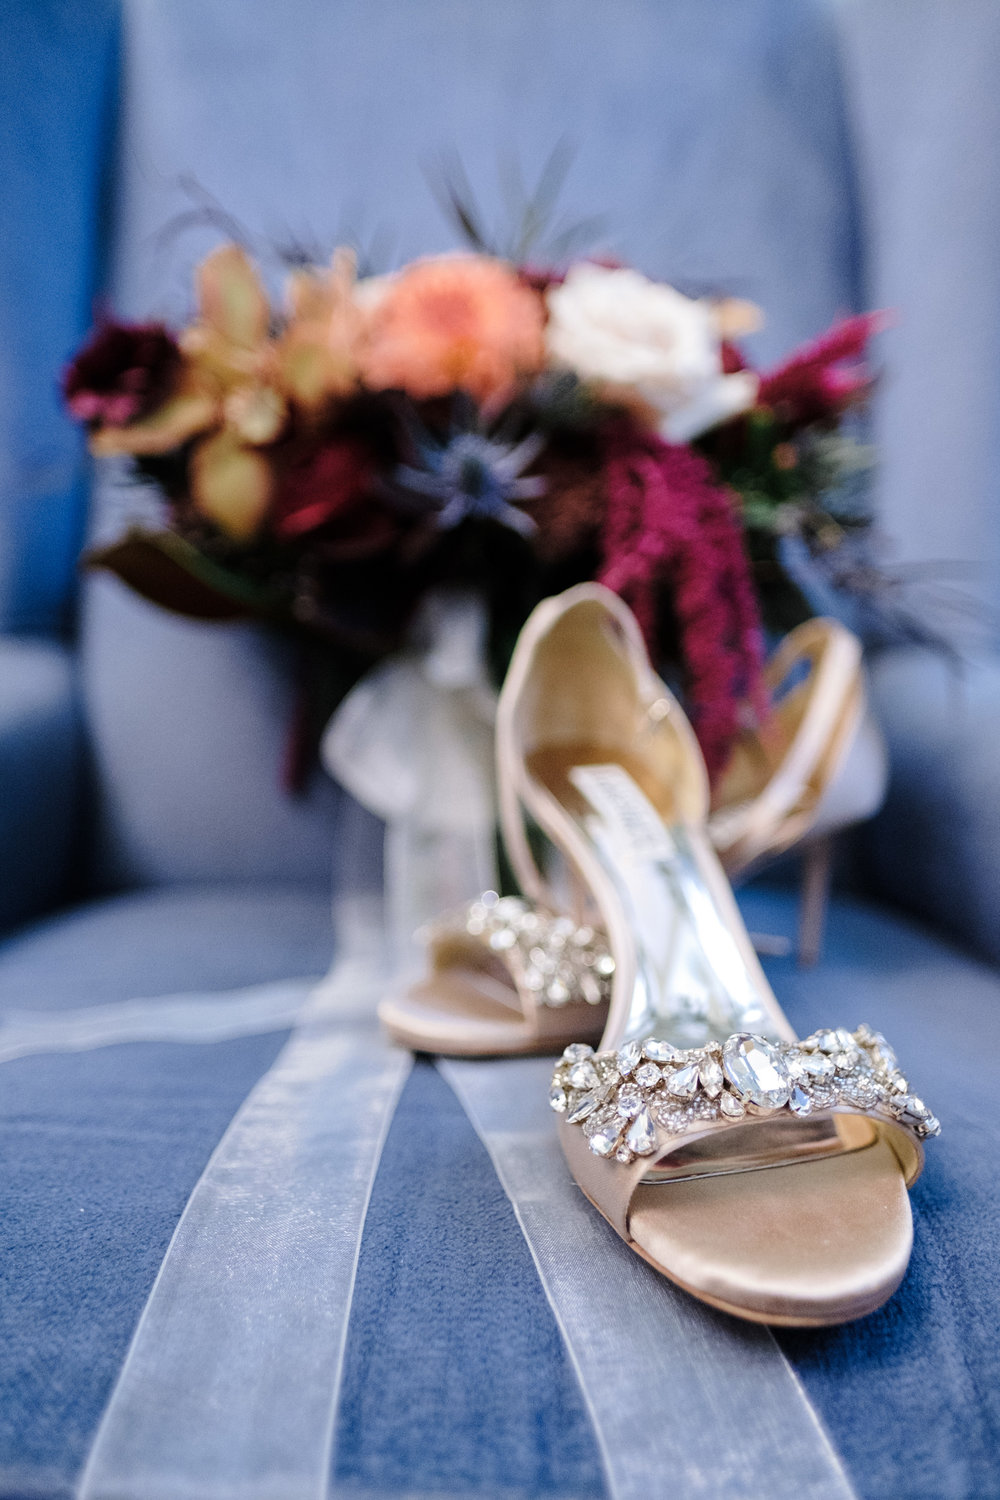 Fall florals and diamond encrusted heals for the bride rest on a blue suede chair at Pabst Best Place in Milwaukee Wisconsin for a fall wedding